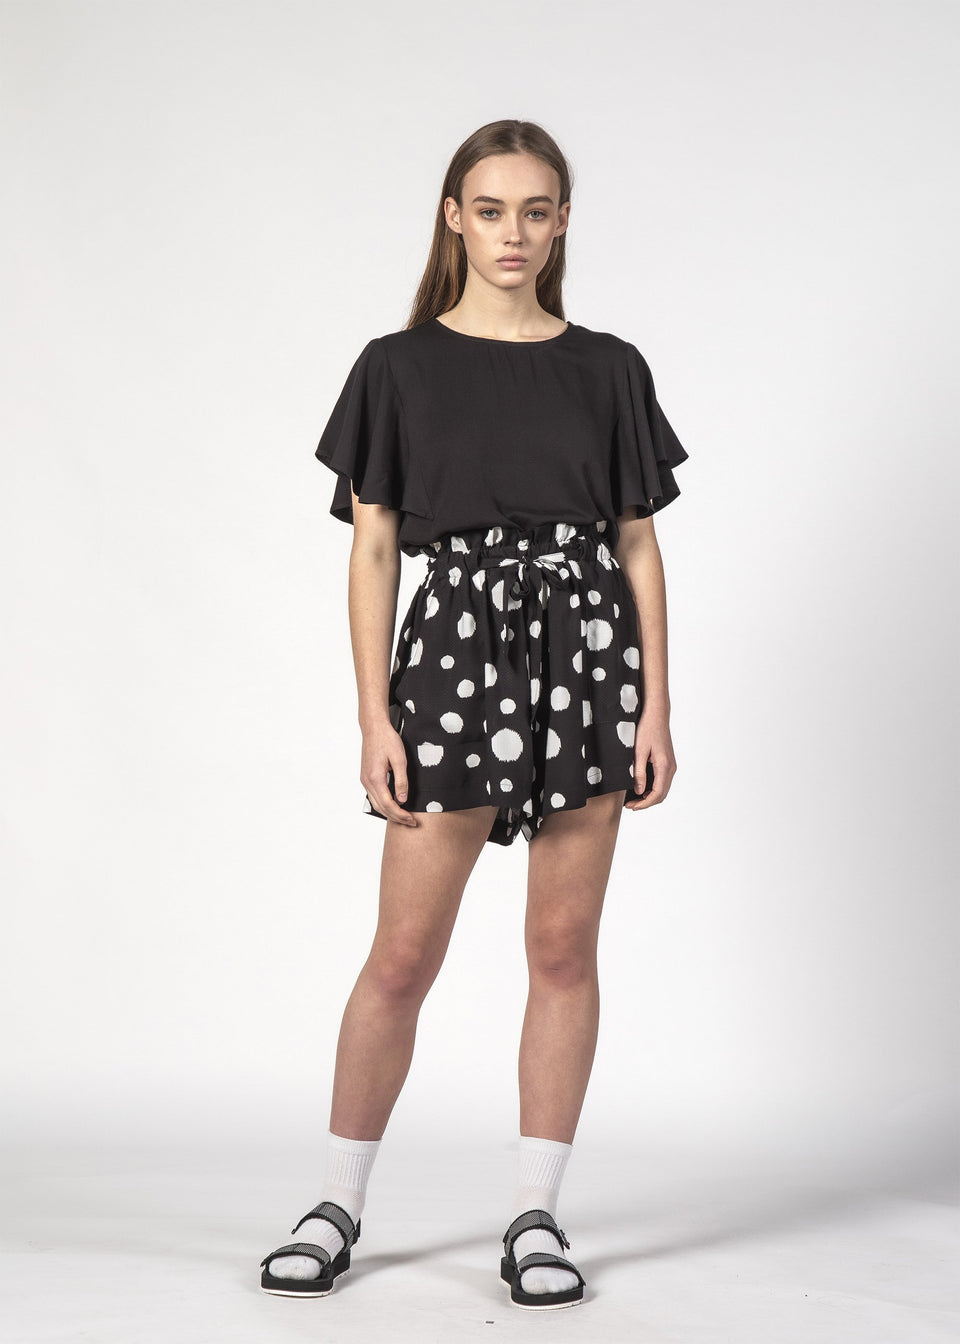 Thing Thing Wonder Shorts Black Dotty - Stencil